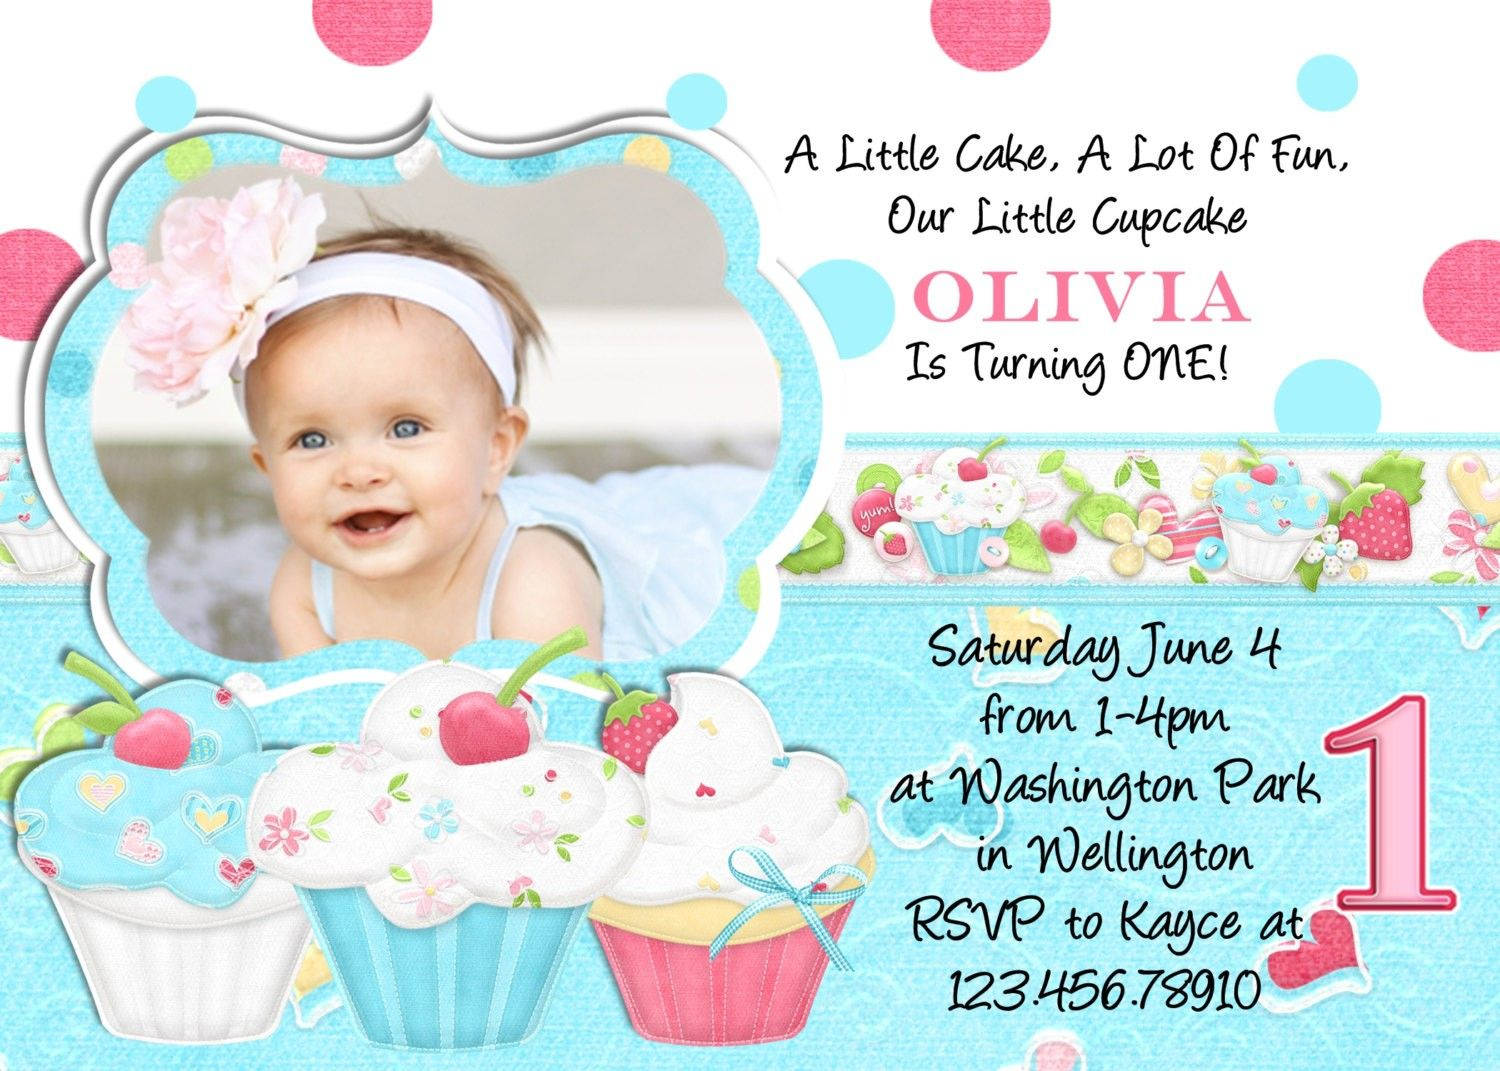 Birthday Invitations Cards Designs Places To Visit Pinterest - Party invitation template: train party invitations templates